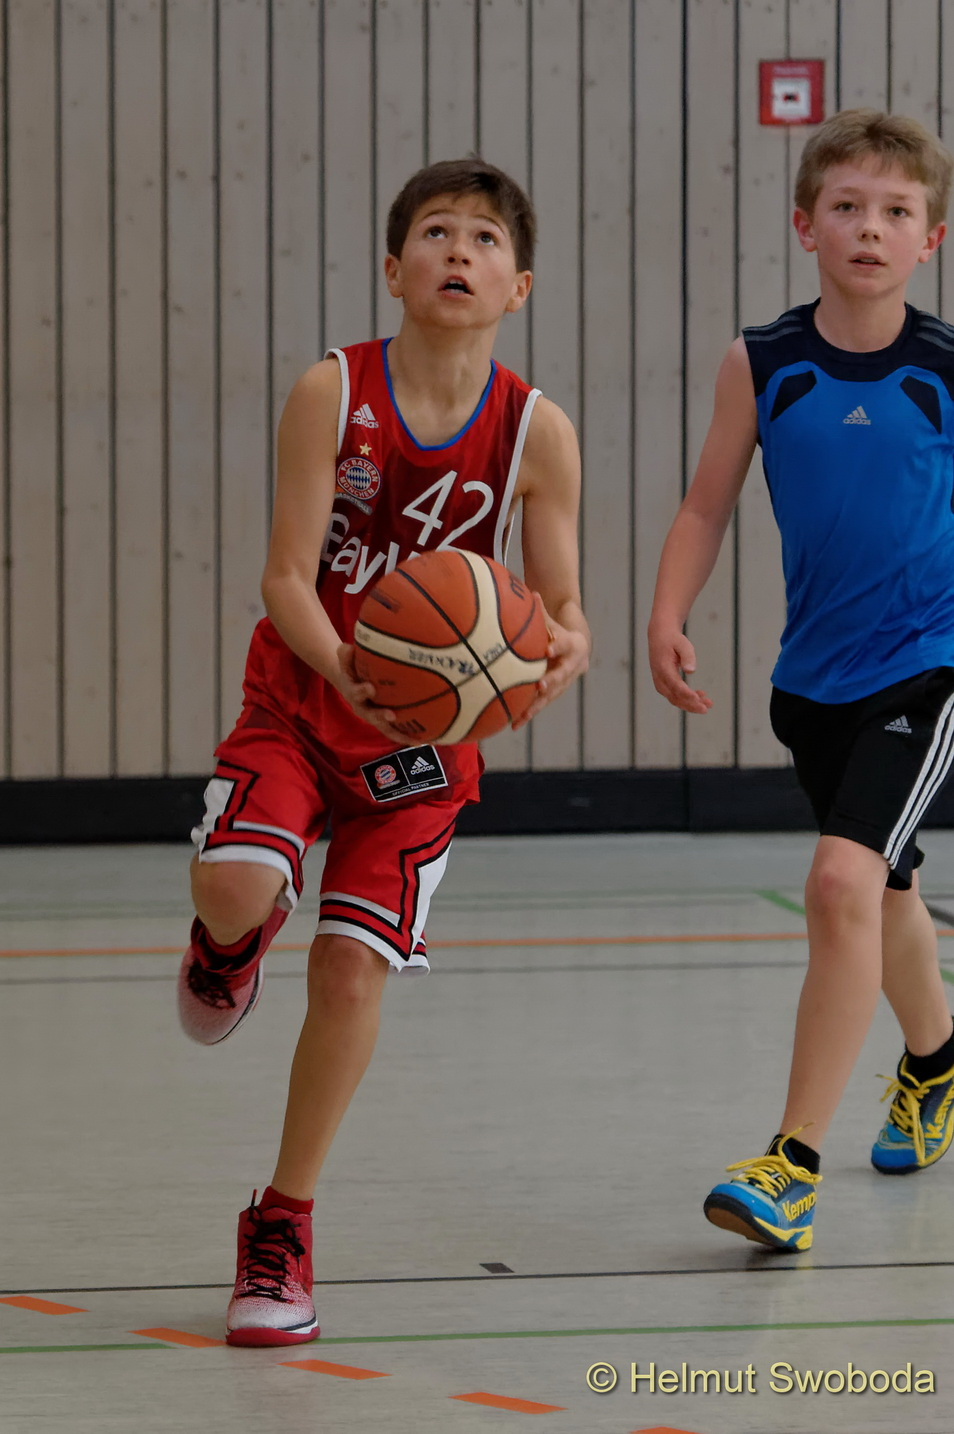 d170402-163120000-100-basketball_weilheim-mixed-turnier_33000543453_o